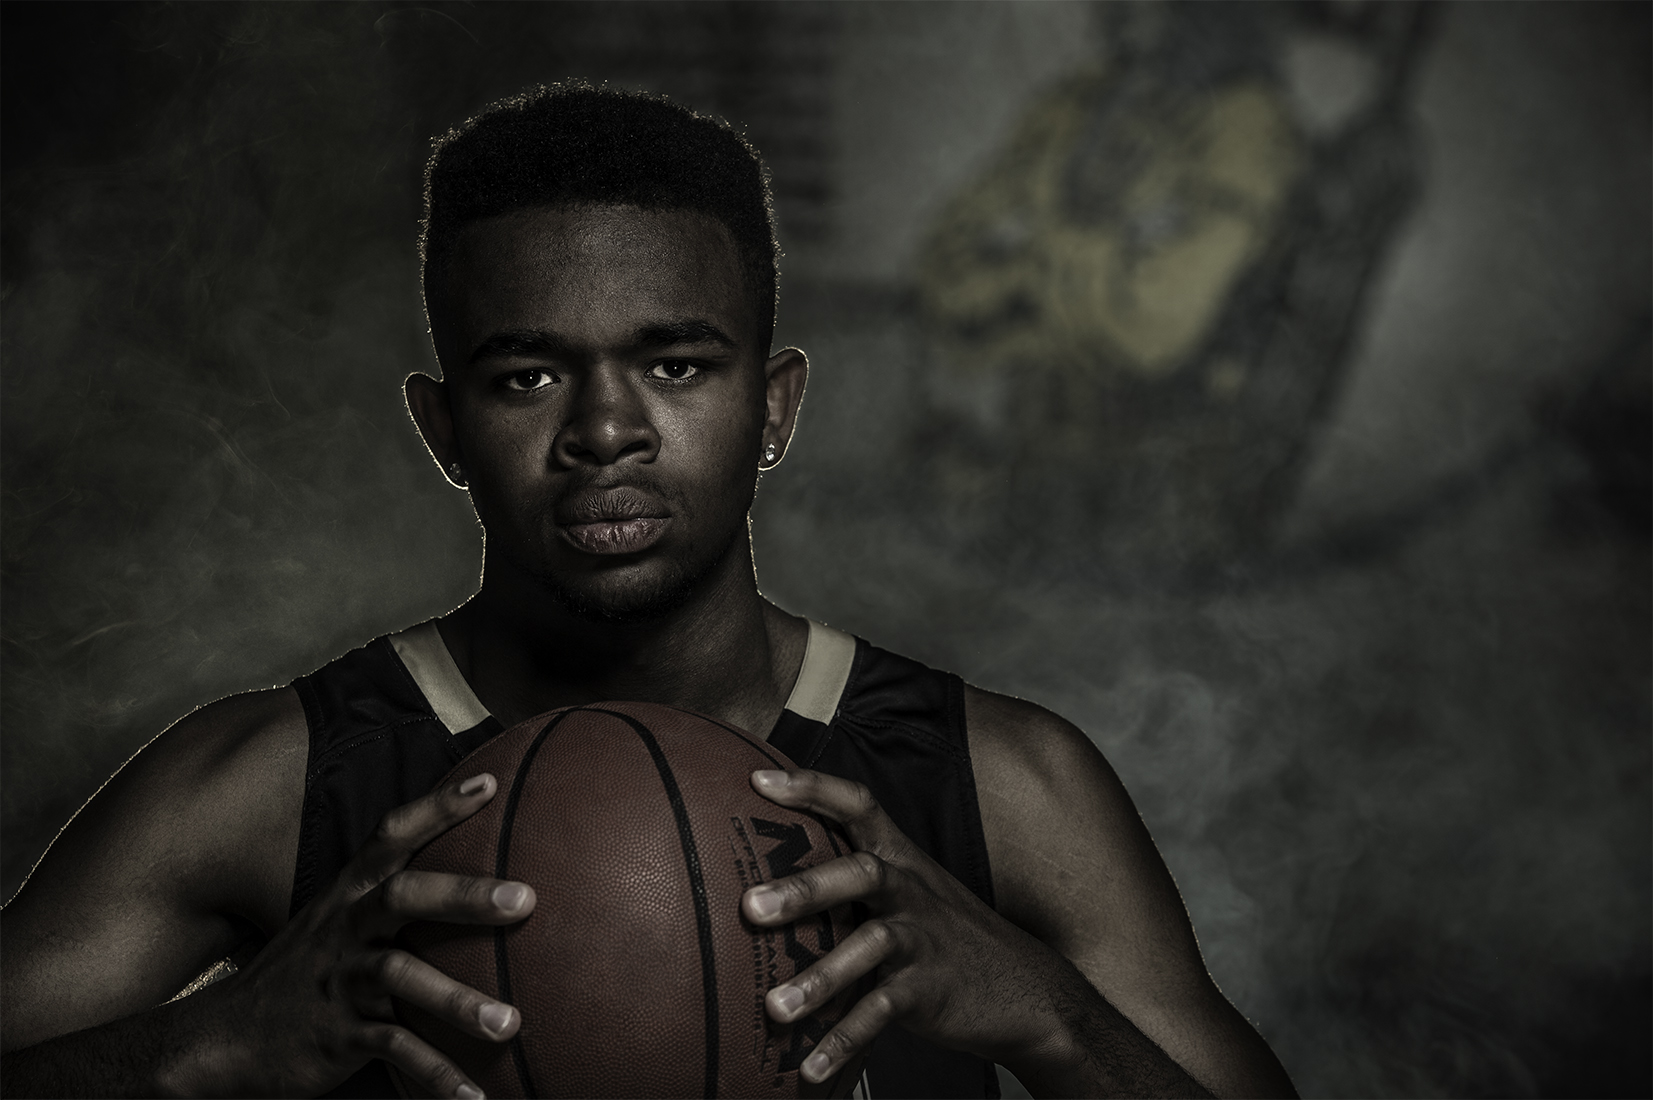 Male basketball player portrait